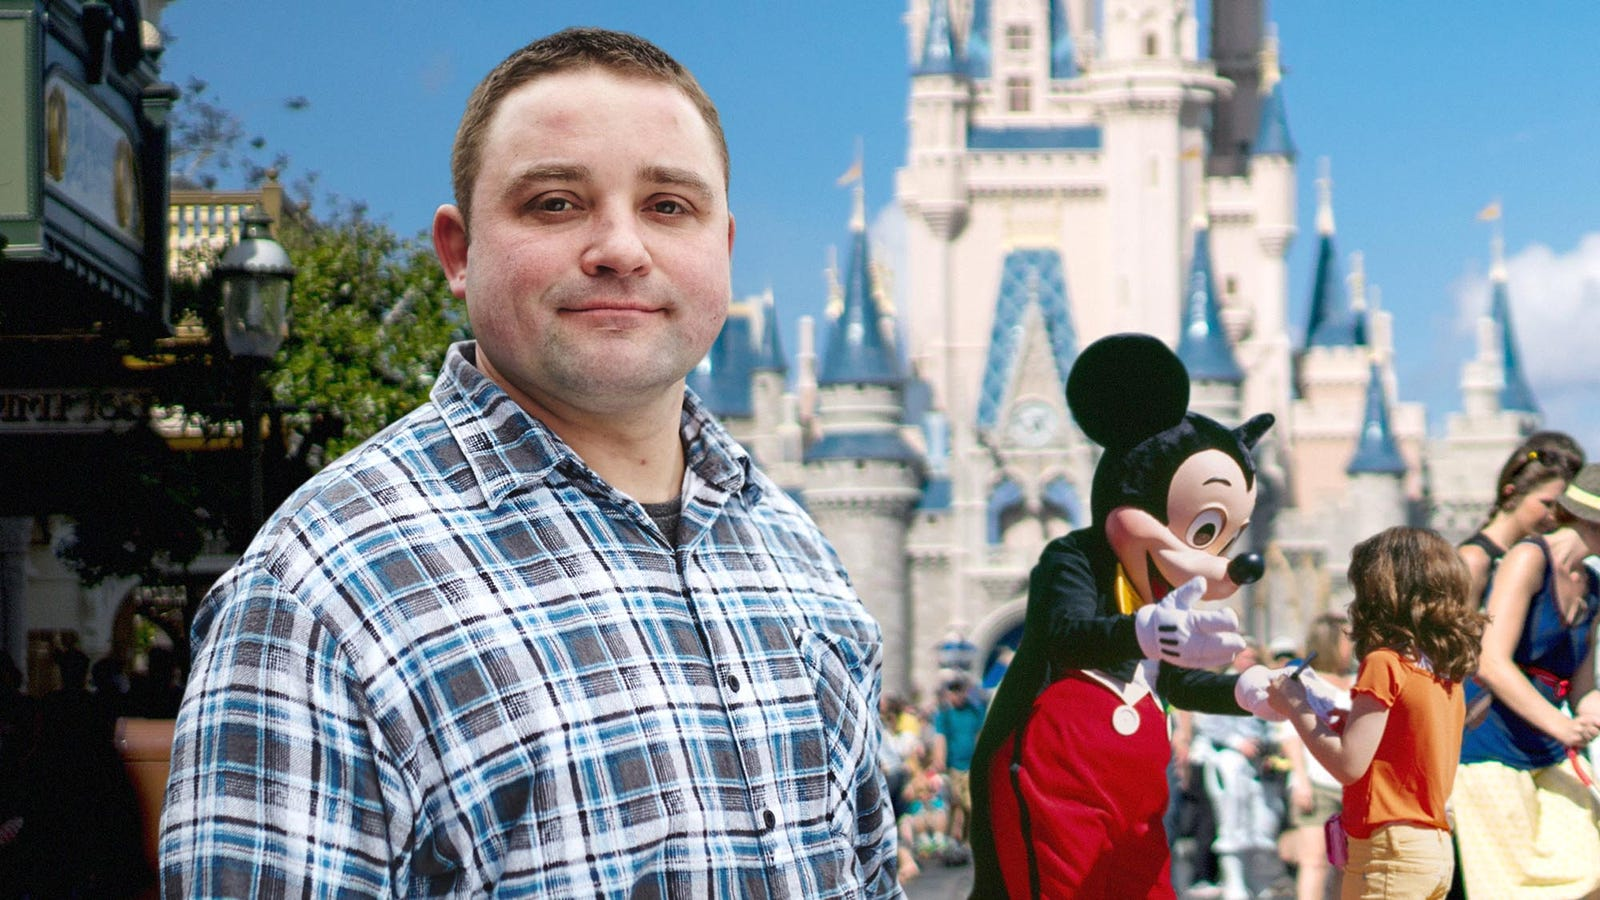 Polite Disney World Guest Decides Not To Bother Mickey Mouse For Picture